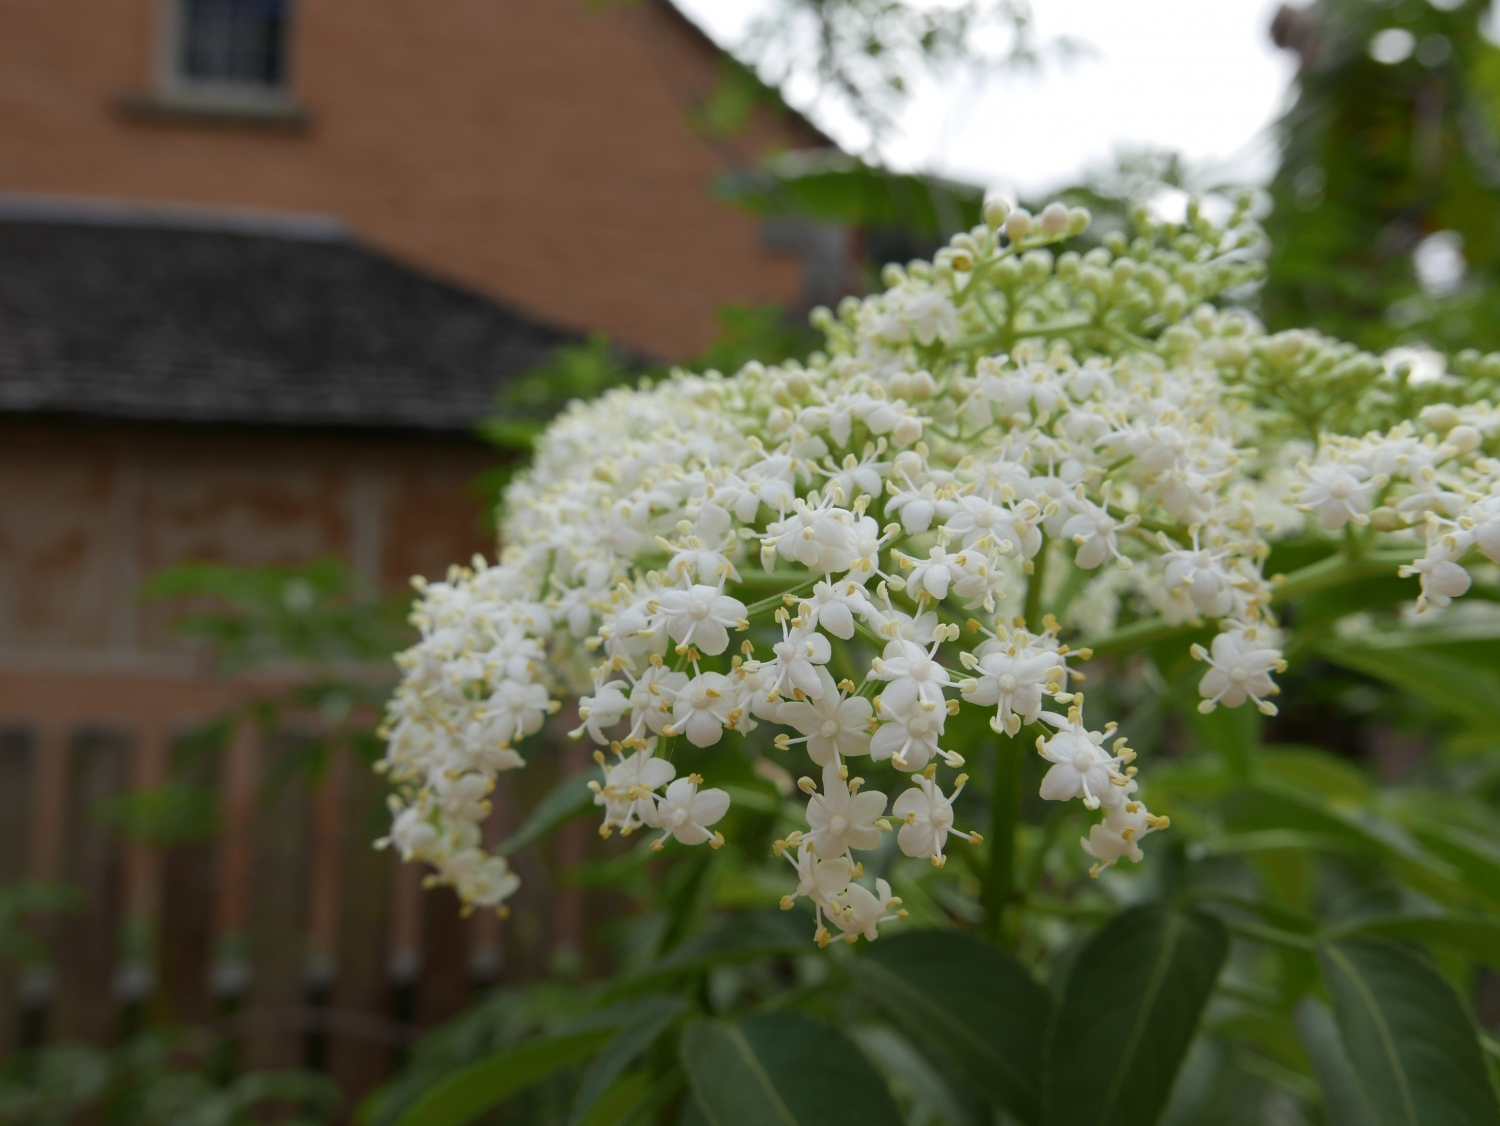 The white flowers of the elderberry at Vaucluse House